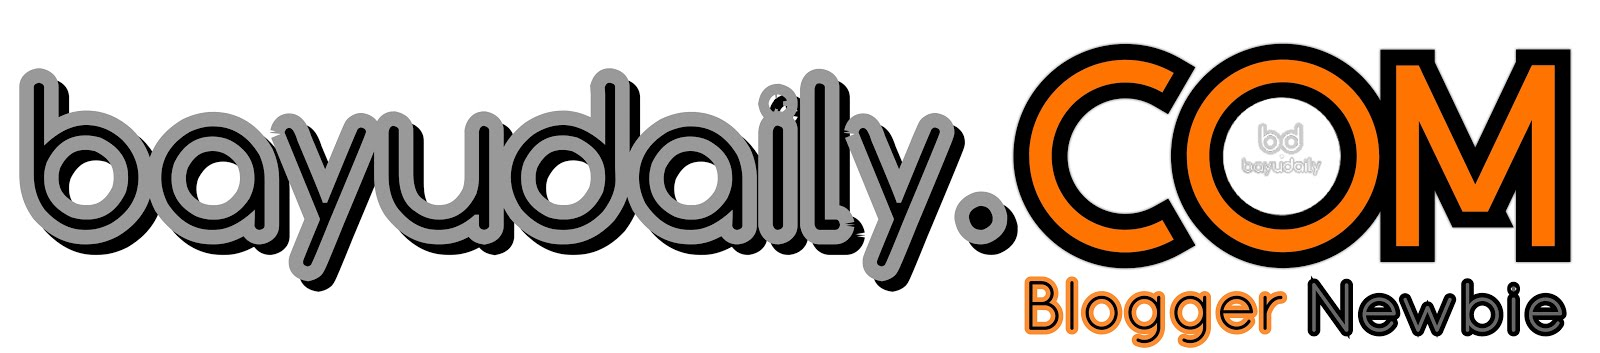 BAYU DAILY Blog